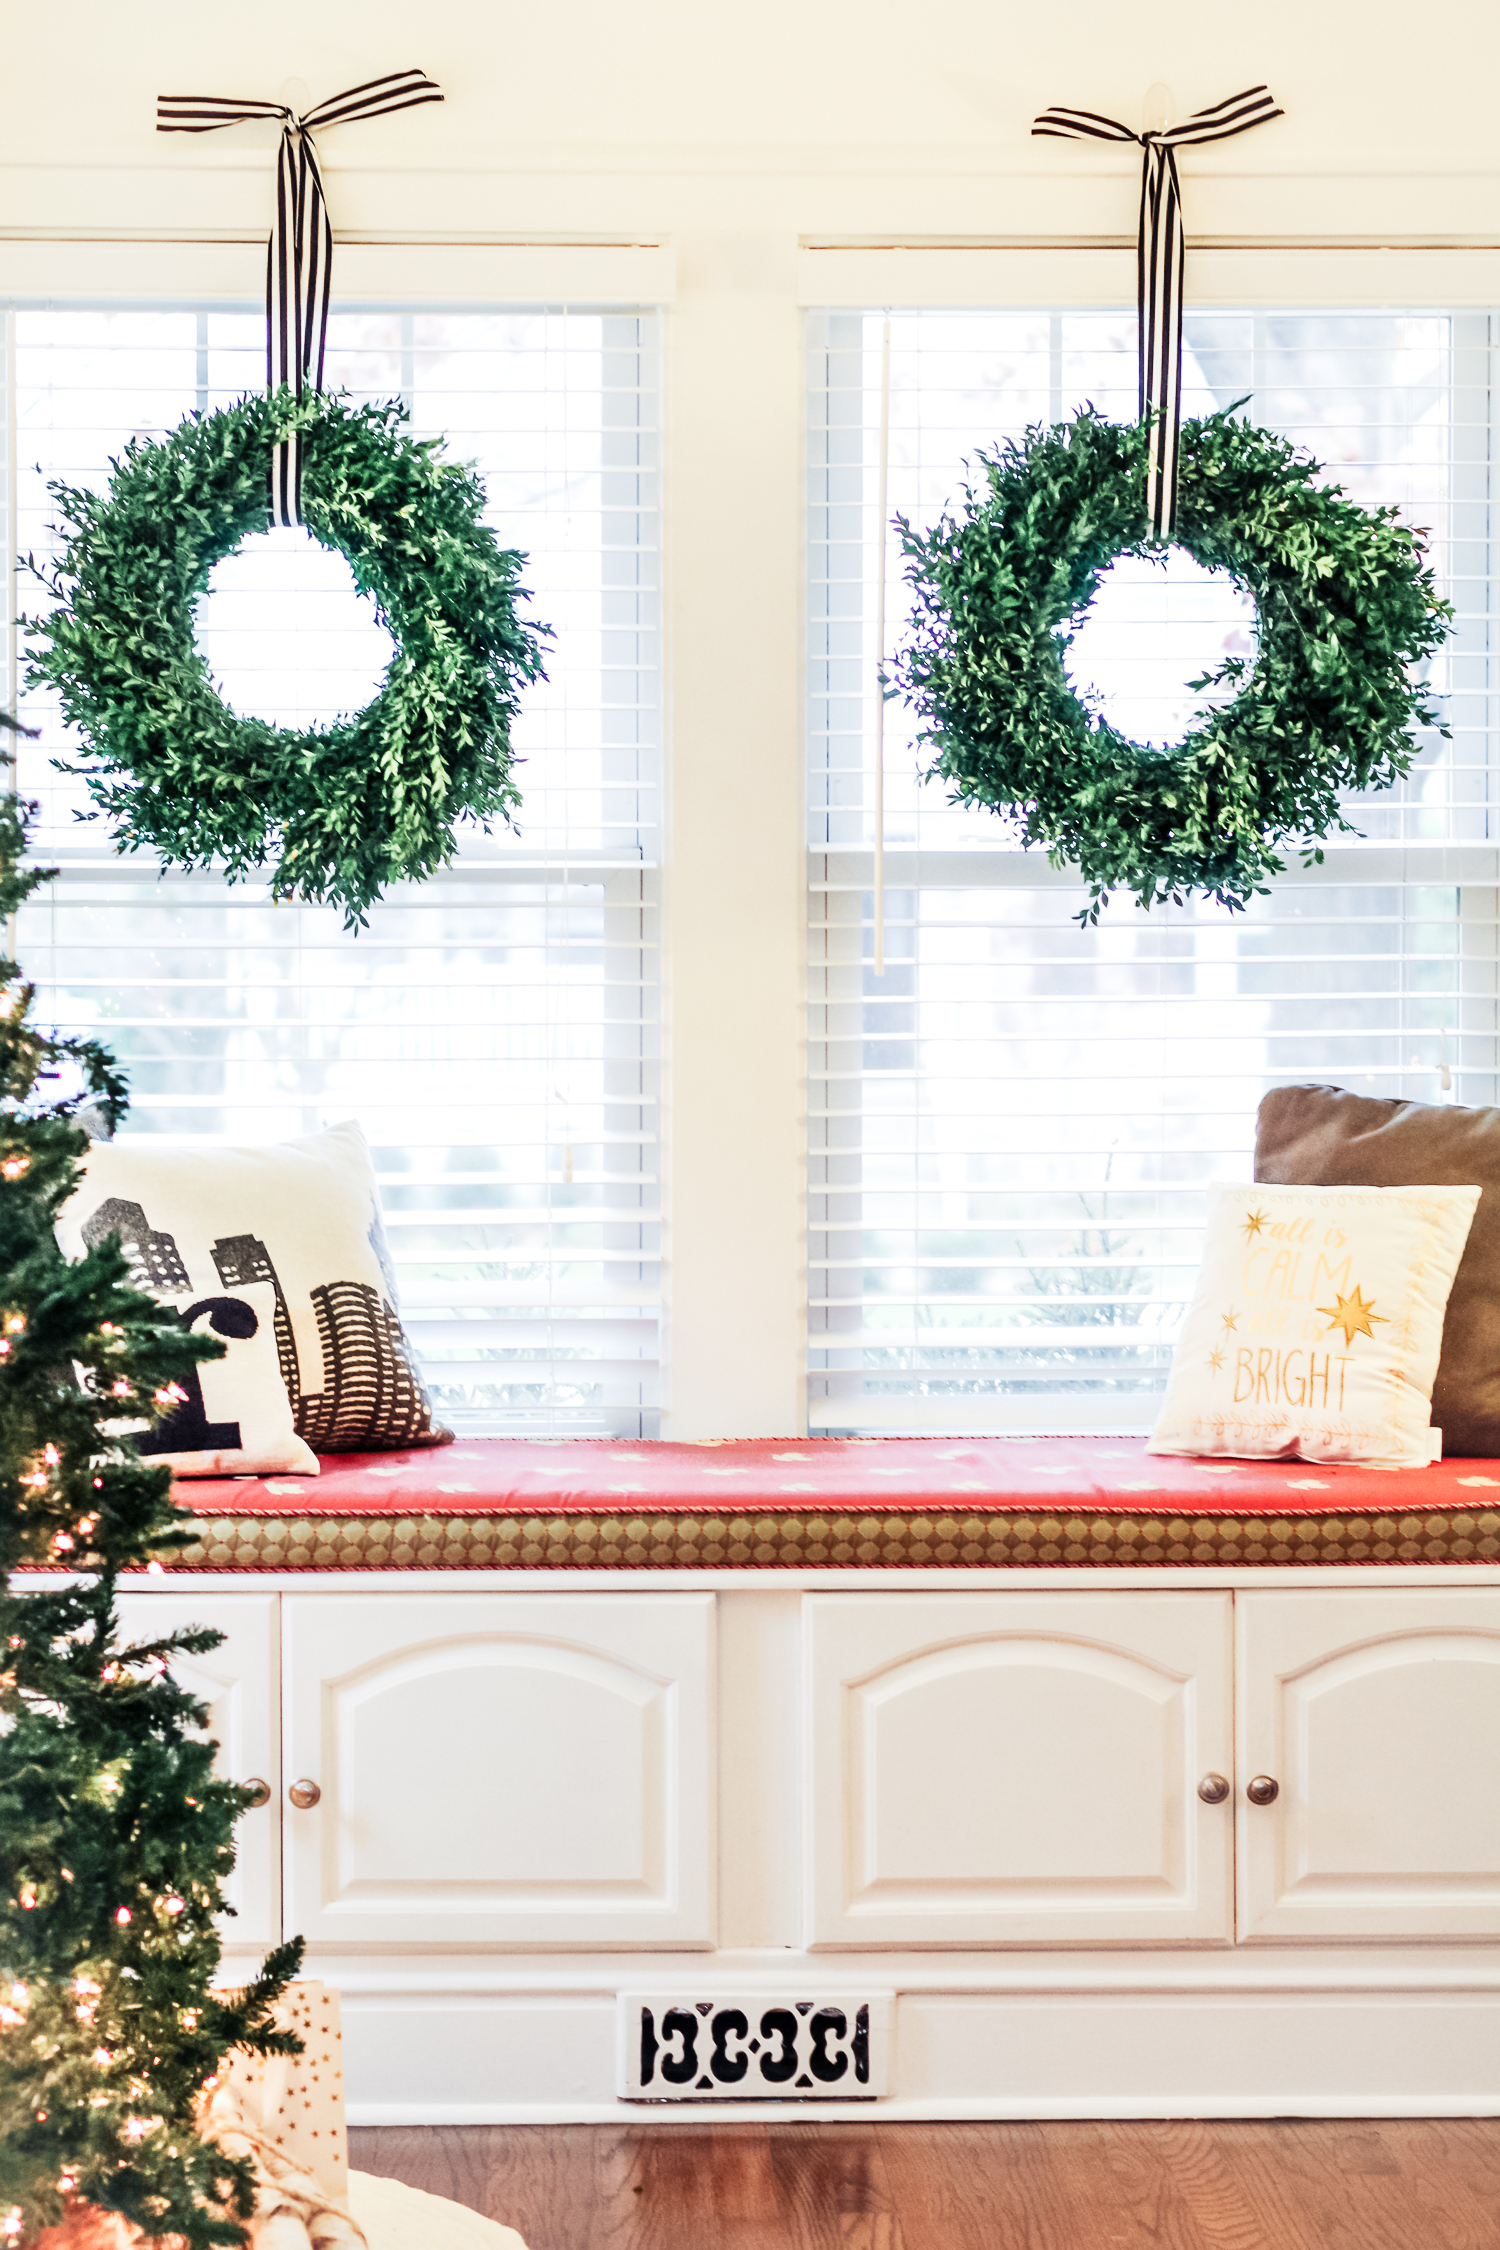 Since you guys gave me awesome feedback on my last post about a seasonal wreath, I had to share a few more for the holidays :) So if you are in need of a new wreath, check out these that I'm crushing on (including these boxwood wreaths!). I love the natural look and simplicity of all of them. All classics (and all faux) so they will last for years!!